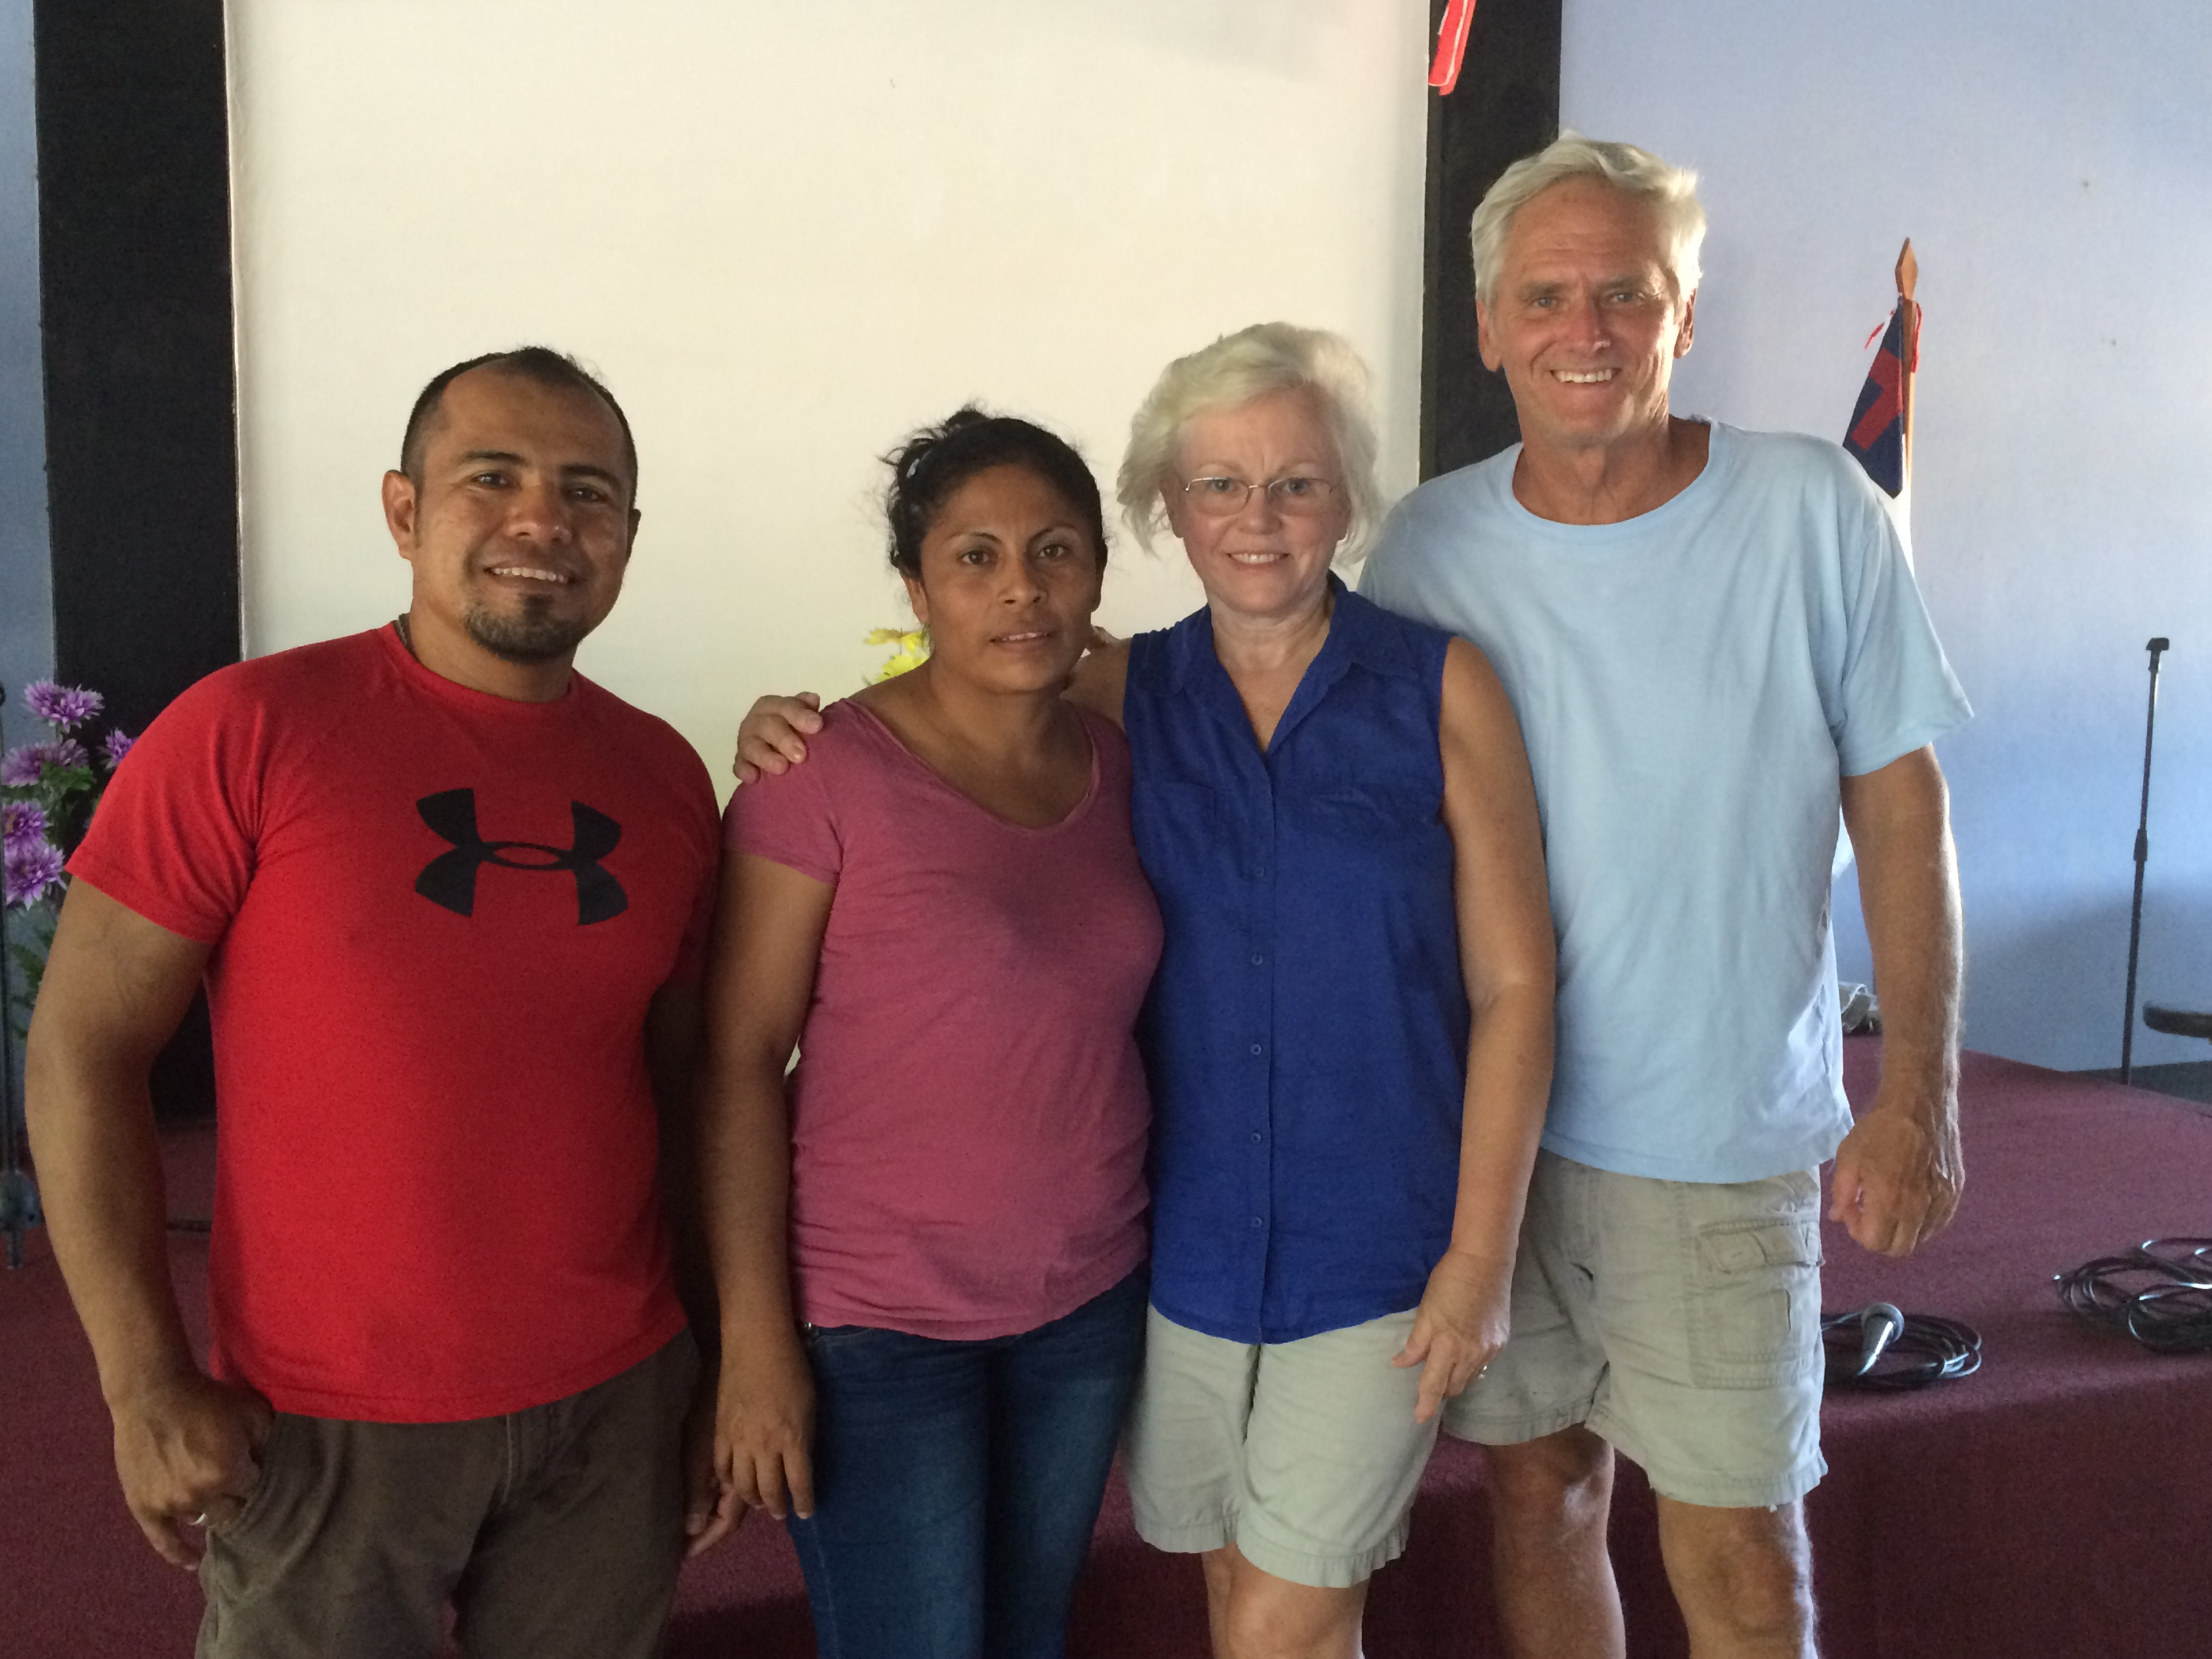 Directors Walter and Zayda with Founders Joe and Sandy